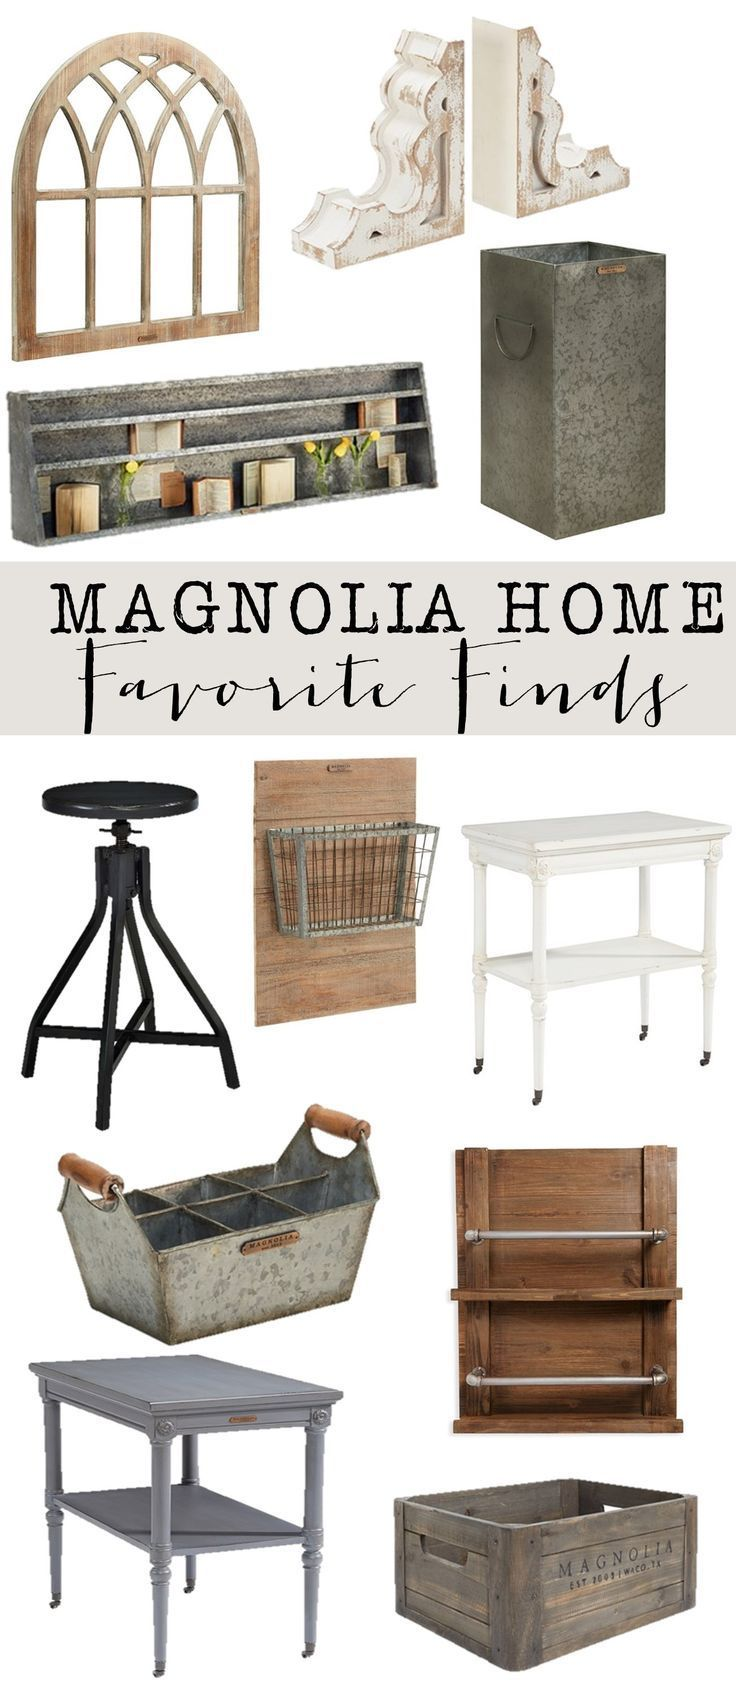 Friday Favorites: Magnolia Home Decor: Do you love Fixer upper and want Joanna Gaines to decorate your home?  Well, now you can have a piece of her style with her new decor line.  I am sharing my favorites.